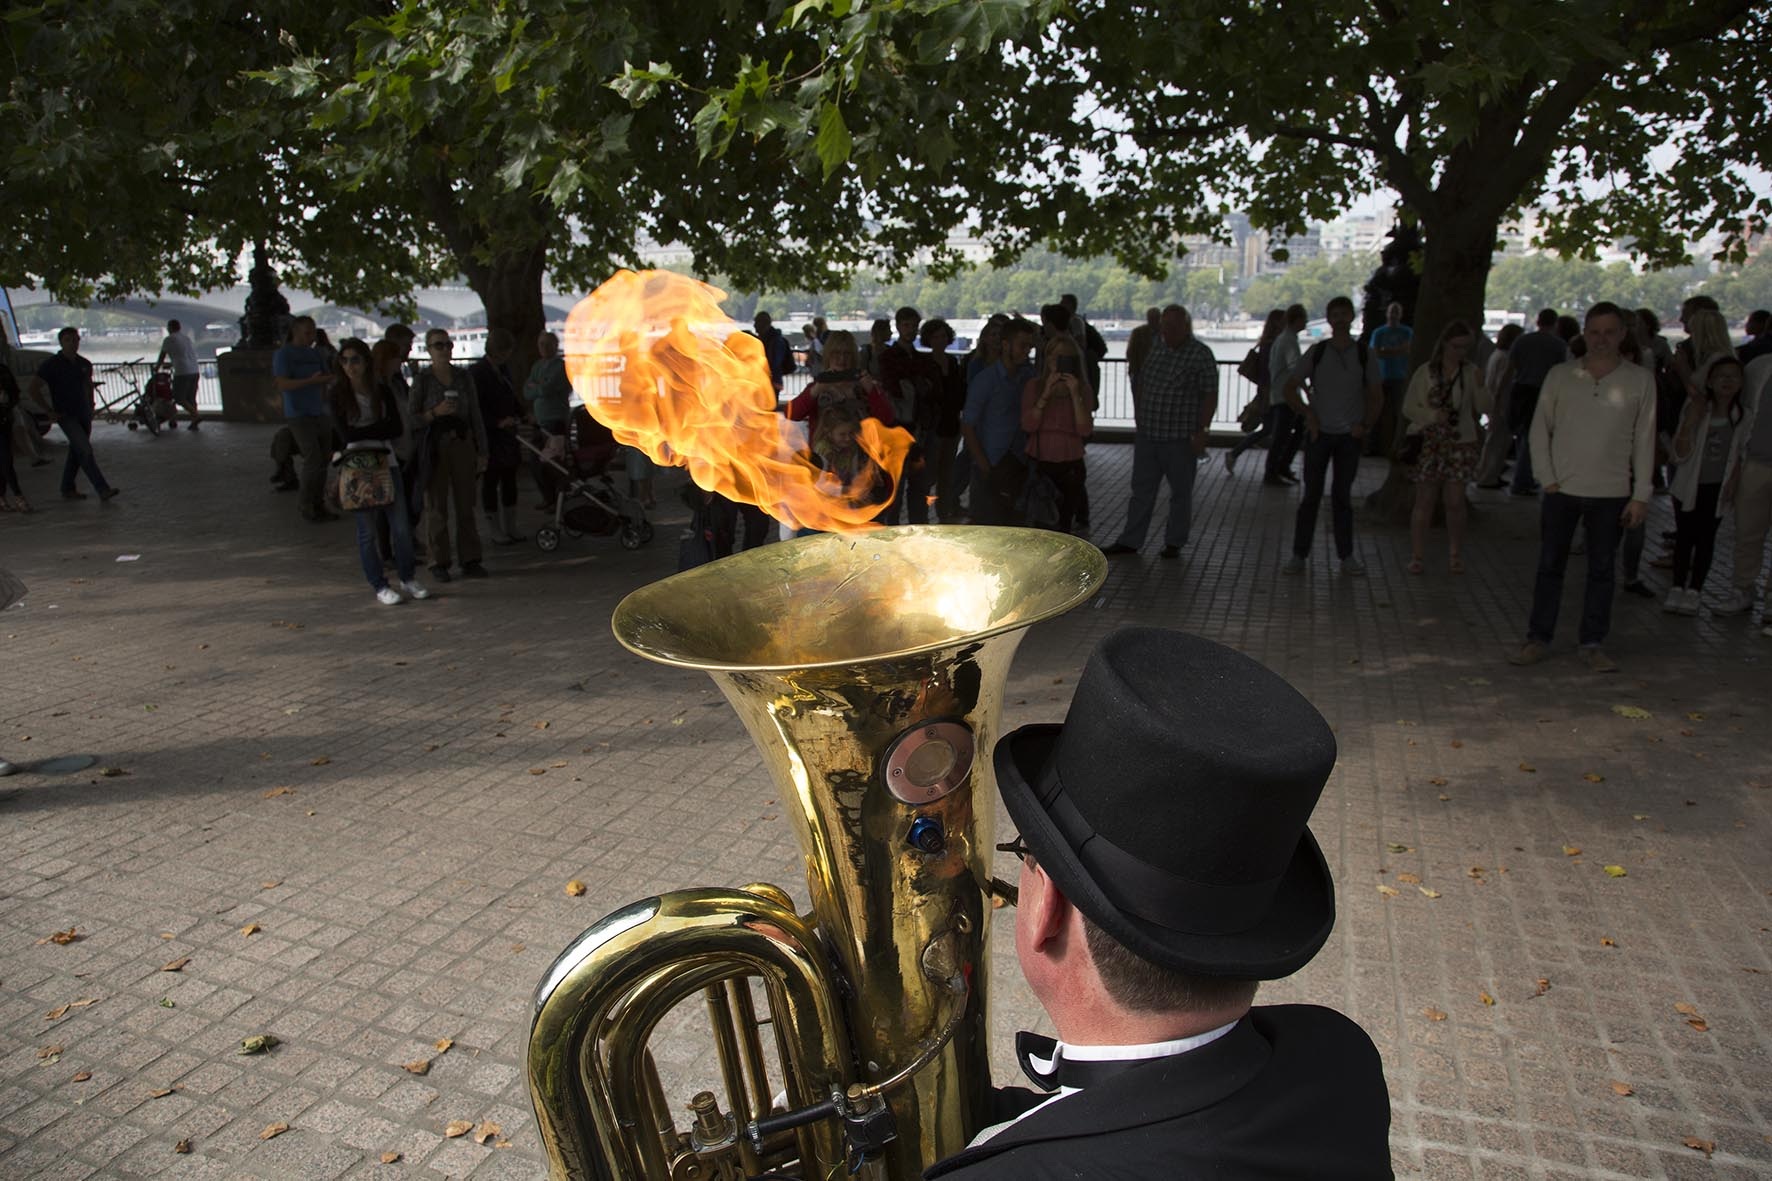 Christopher Werkowicz playing a tuba which shoots out flames.